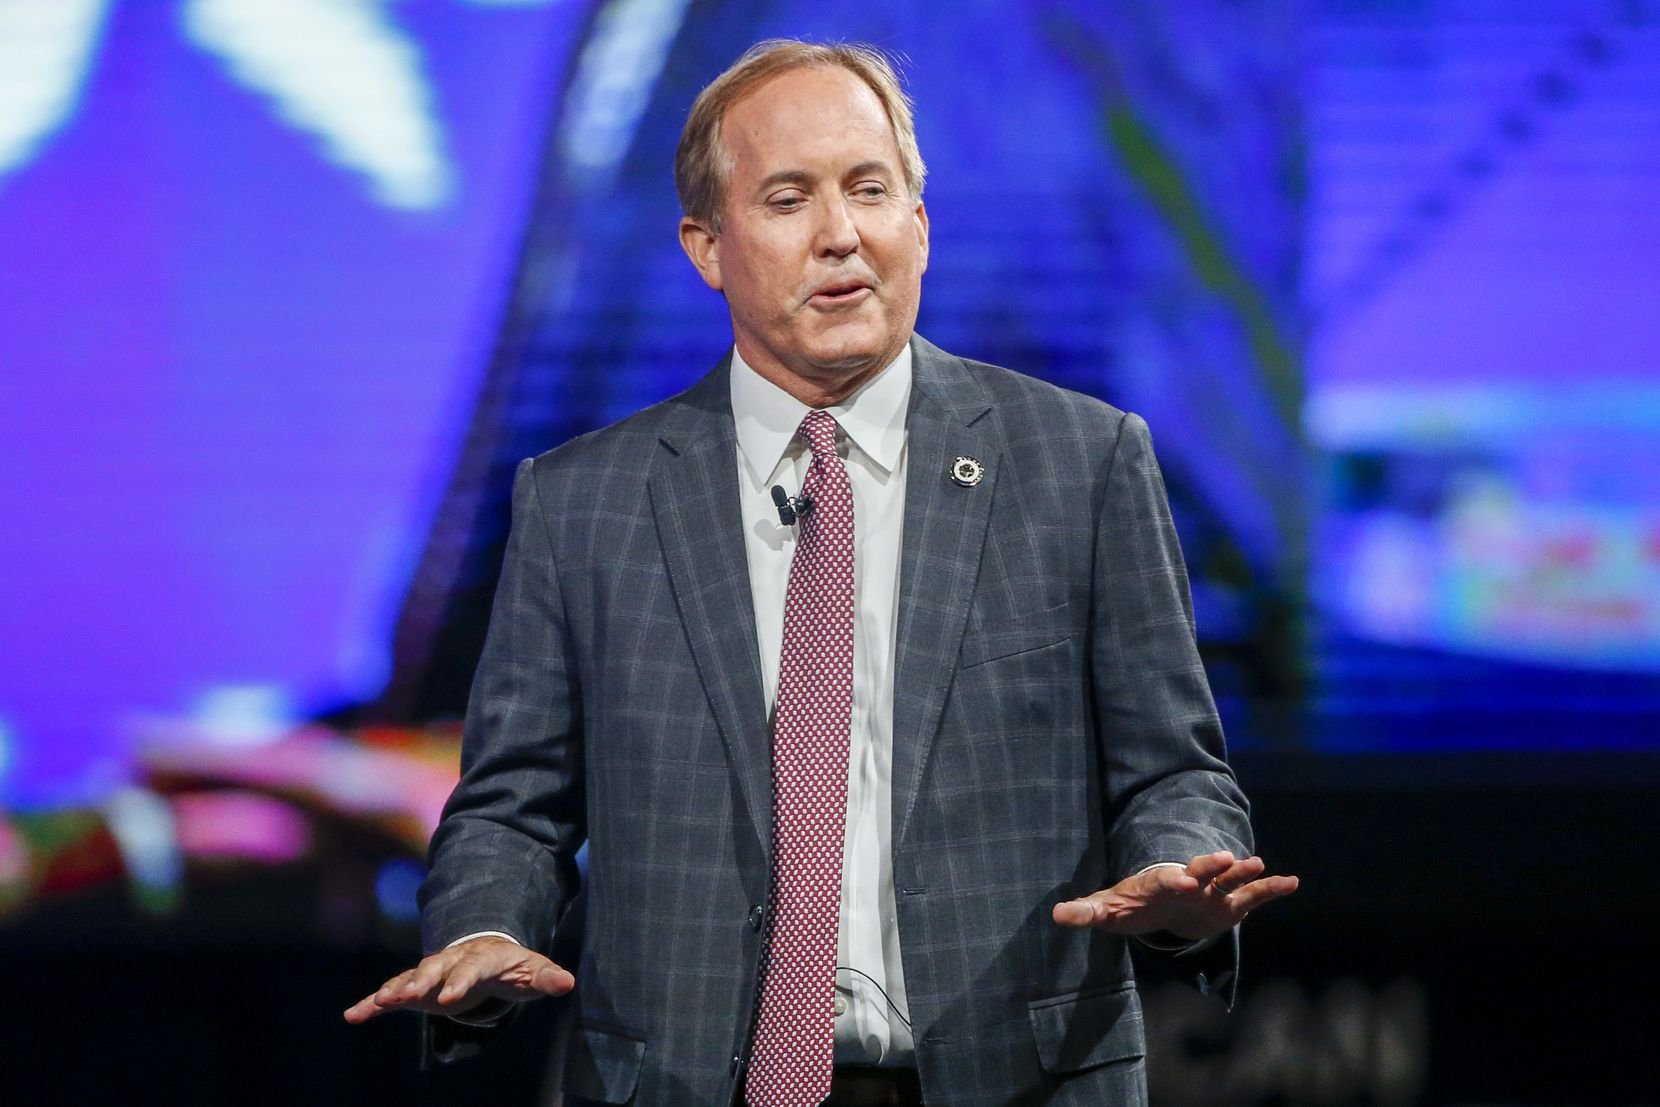 Texas Attorney General Ken Paxton gives remarks at the Conservative Political Action Conference on Sunday, July 11, 2021, in Dallas. (Elias Valverde II/The Dallas Morning News)